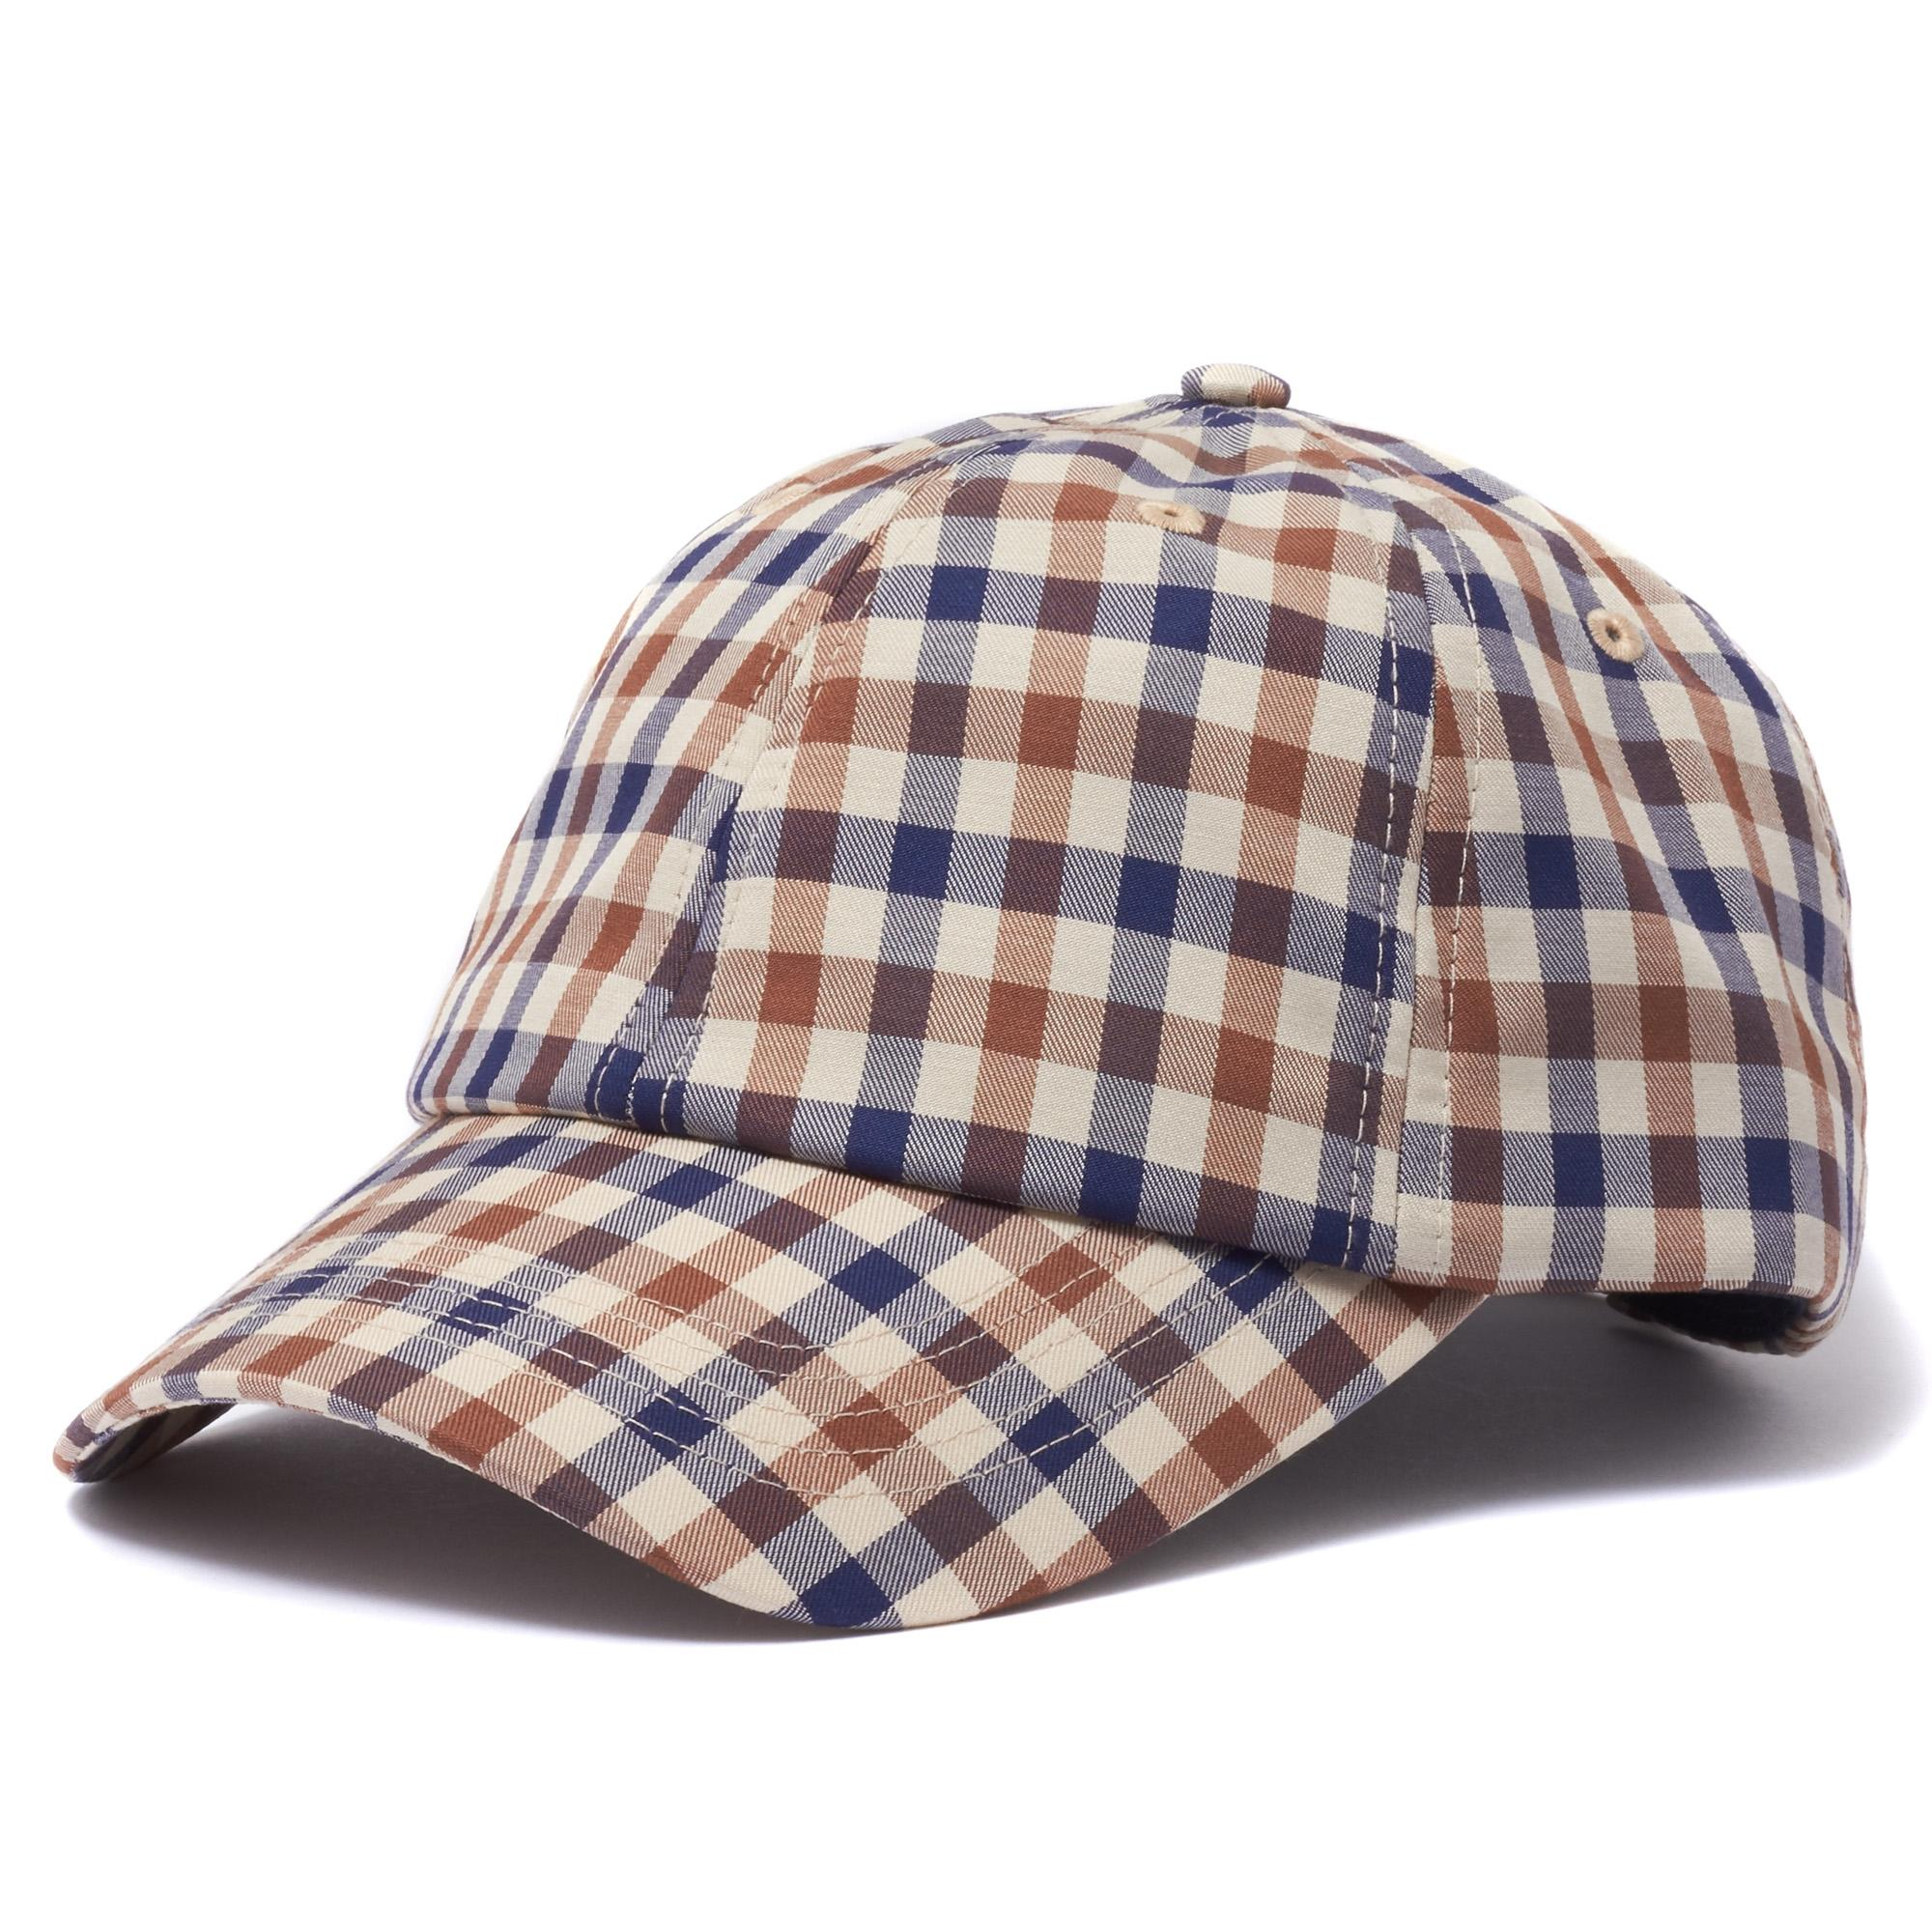 1c9516dd137 Aquascutum Vicuna Mason Club Check Cap for Men - Save 40% - Lyst